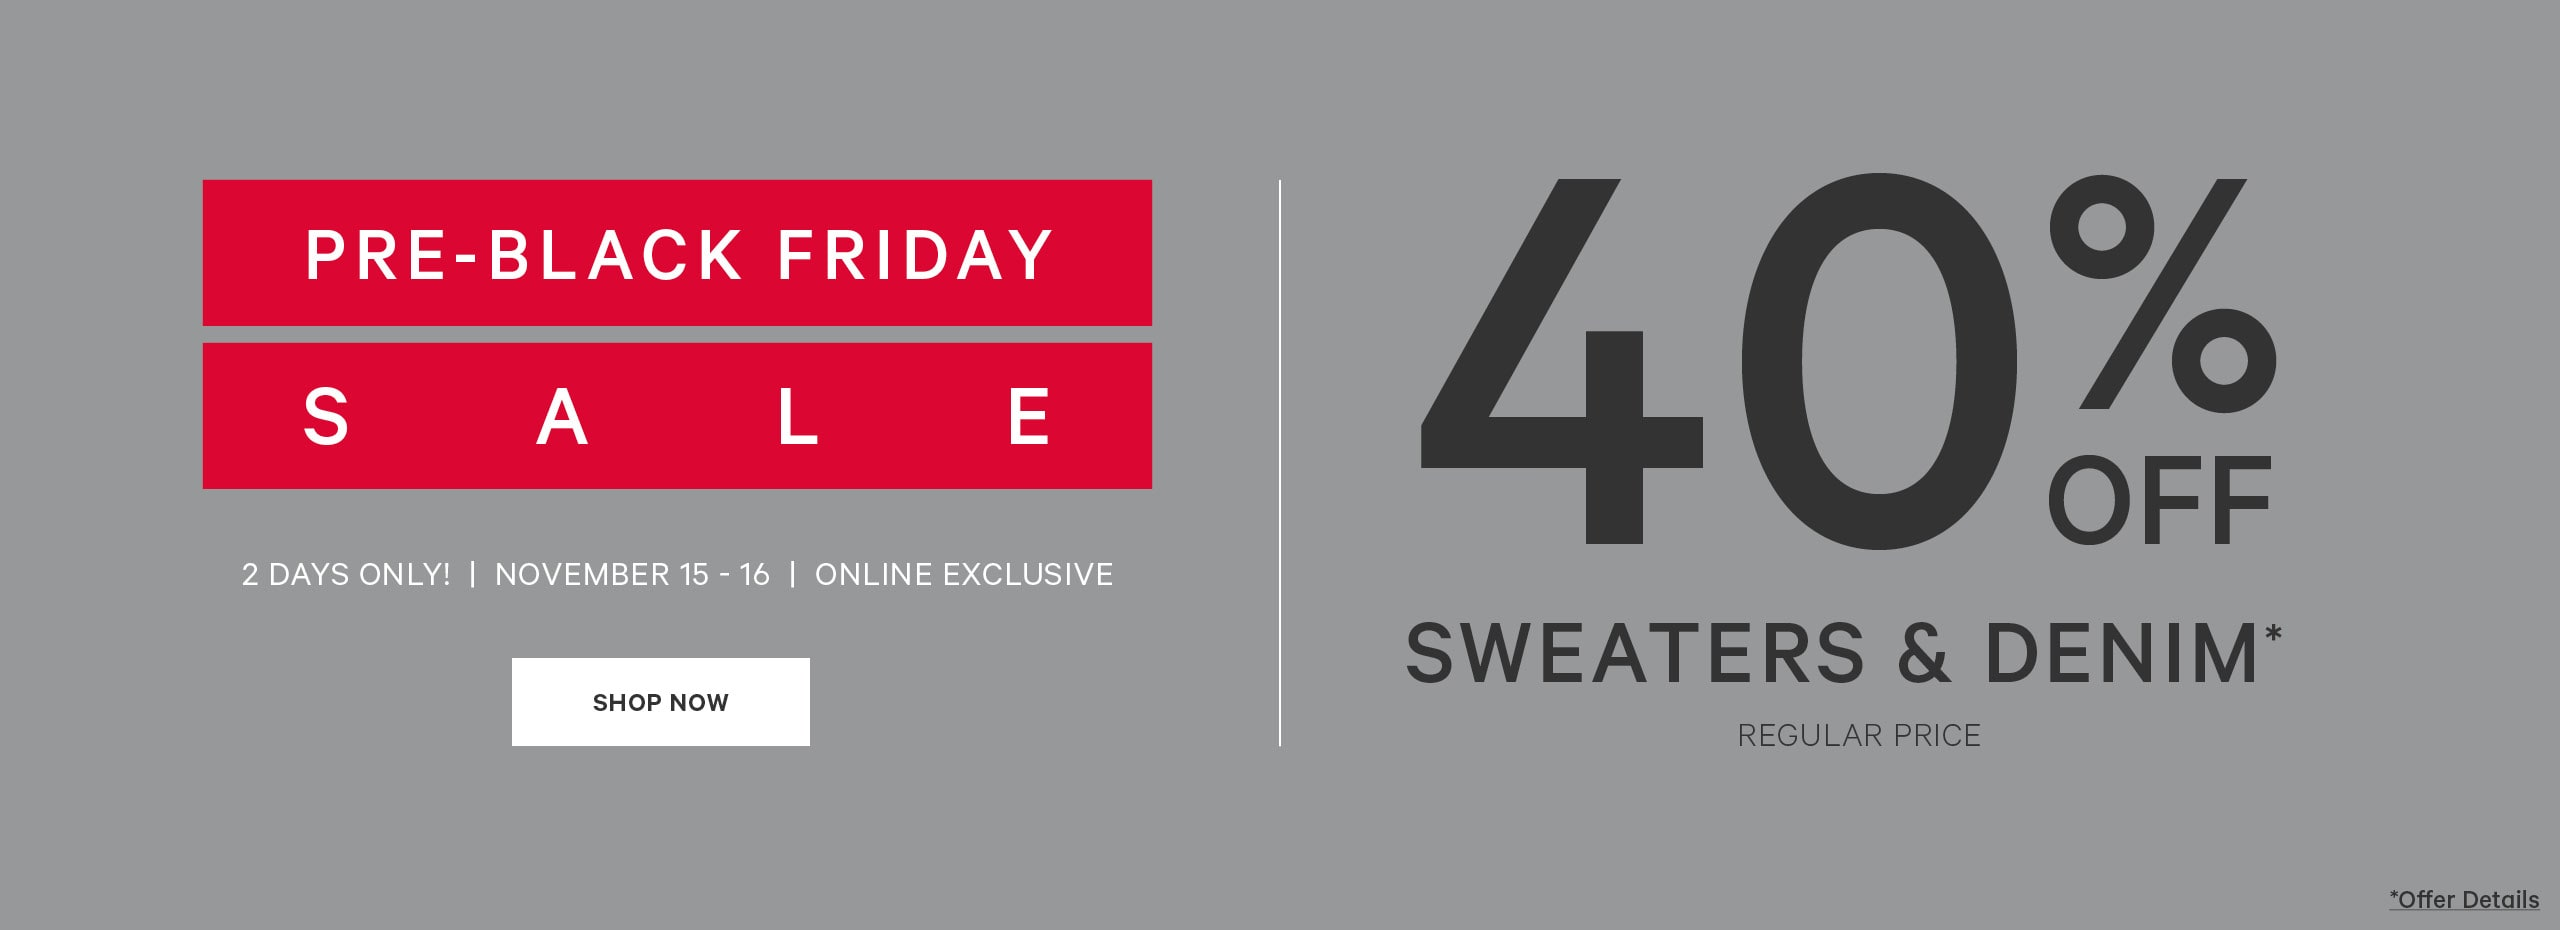 Pre-Black Friday Sale. 40% off sweaters & denim. November 15 - 16